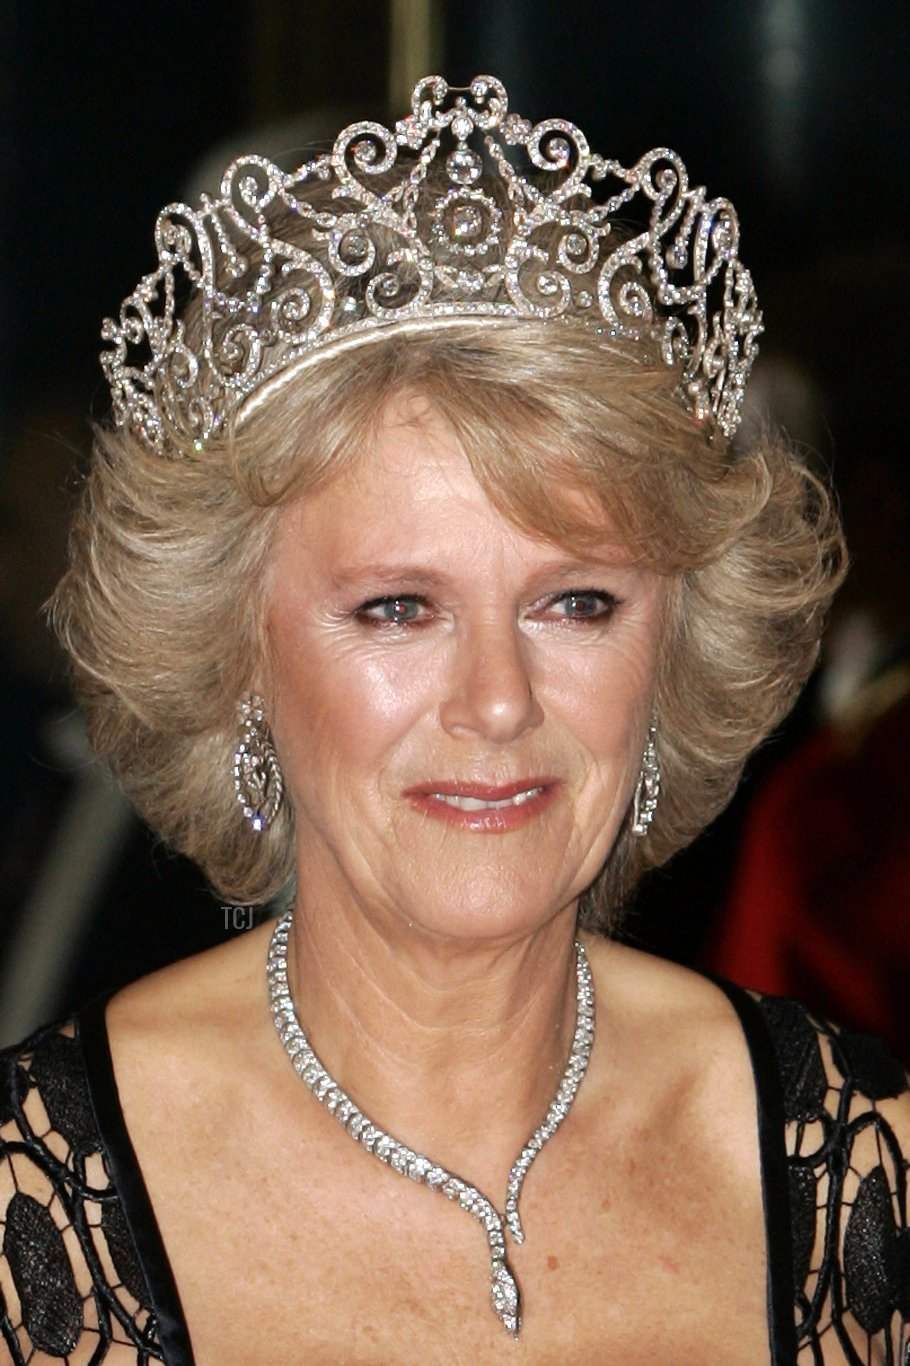 Camilla, Duchess of Cornwall, poses for photographers before attending a banquet at Buckingham's Palace in London 25 October 2005 in honour of Norway's Crown Prince Haakon and Crown Princess Mette-Marit who are on a three-day official visit to mark their Nordic nation's 100 years of independence